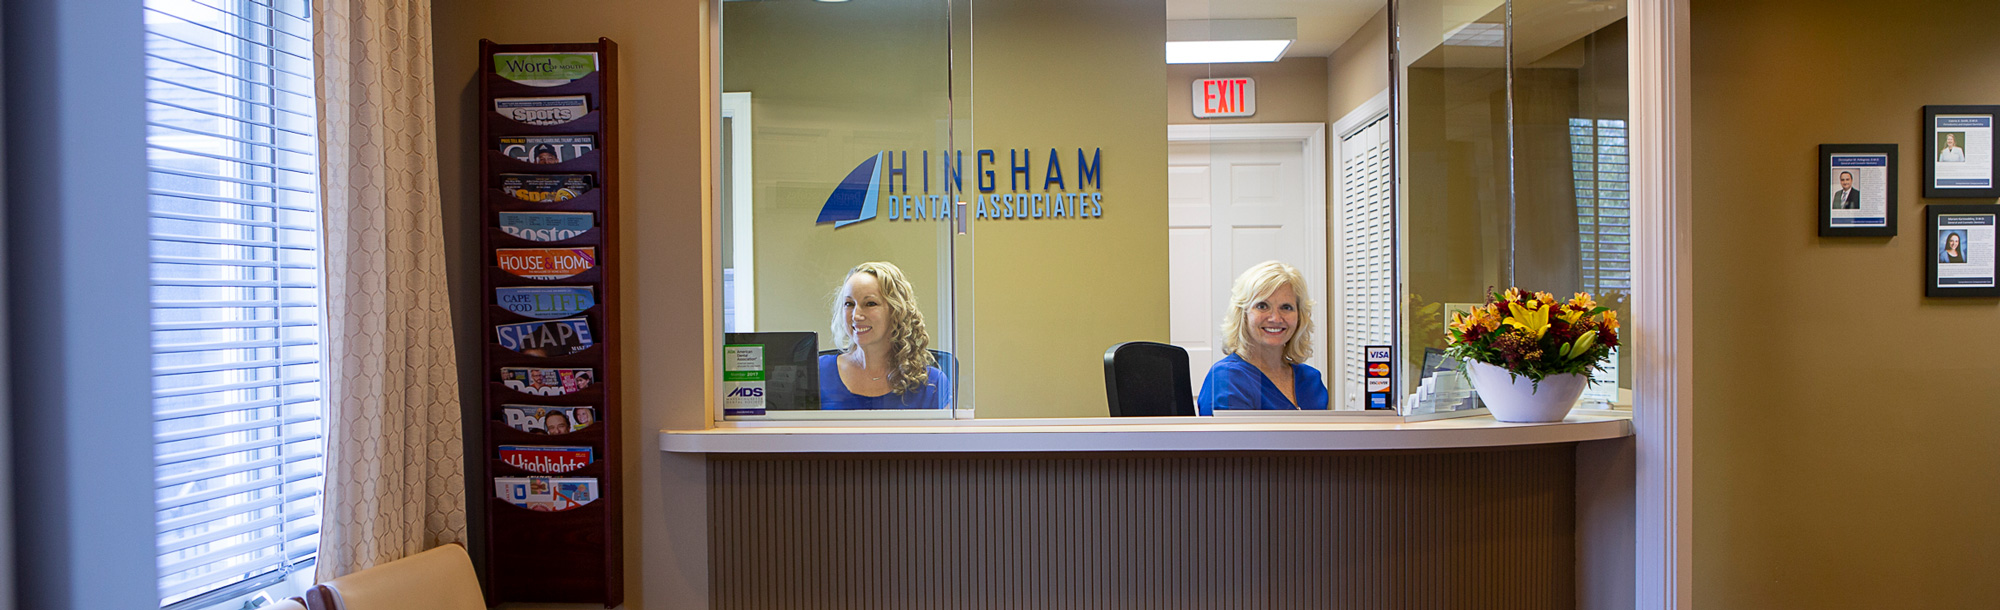 Affordable Dentist in MA - Hingham Dental Associates